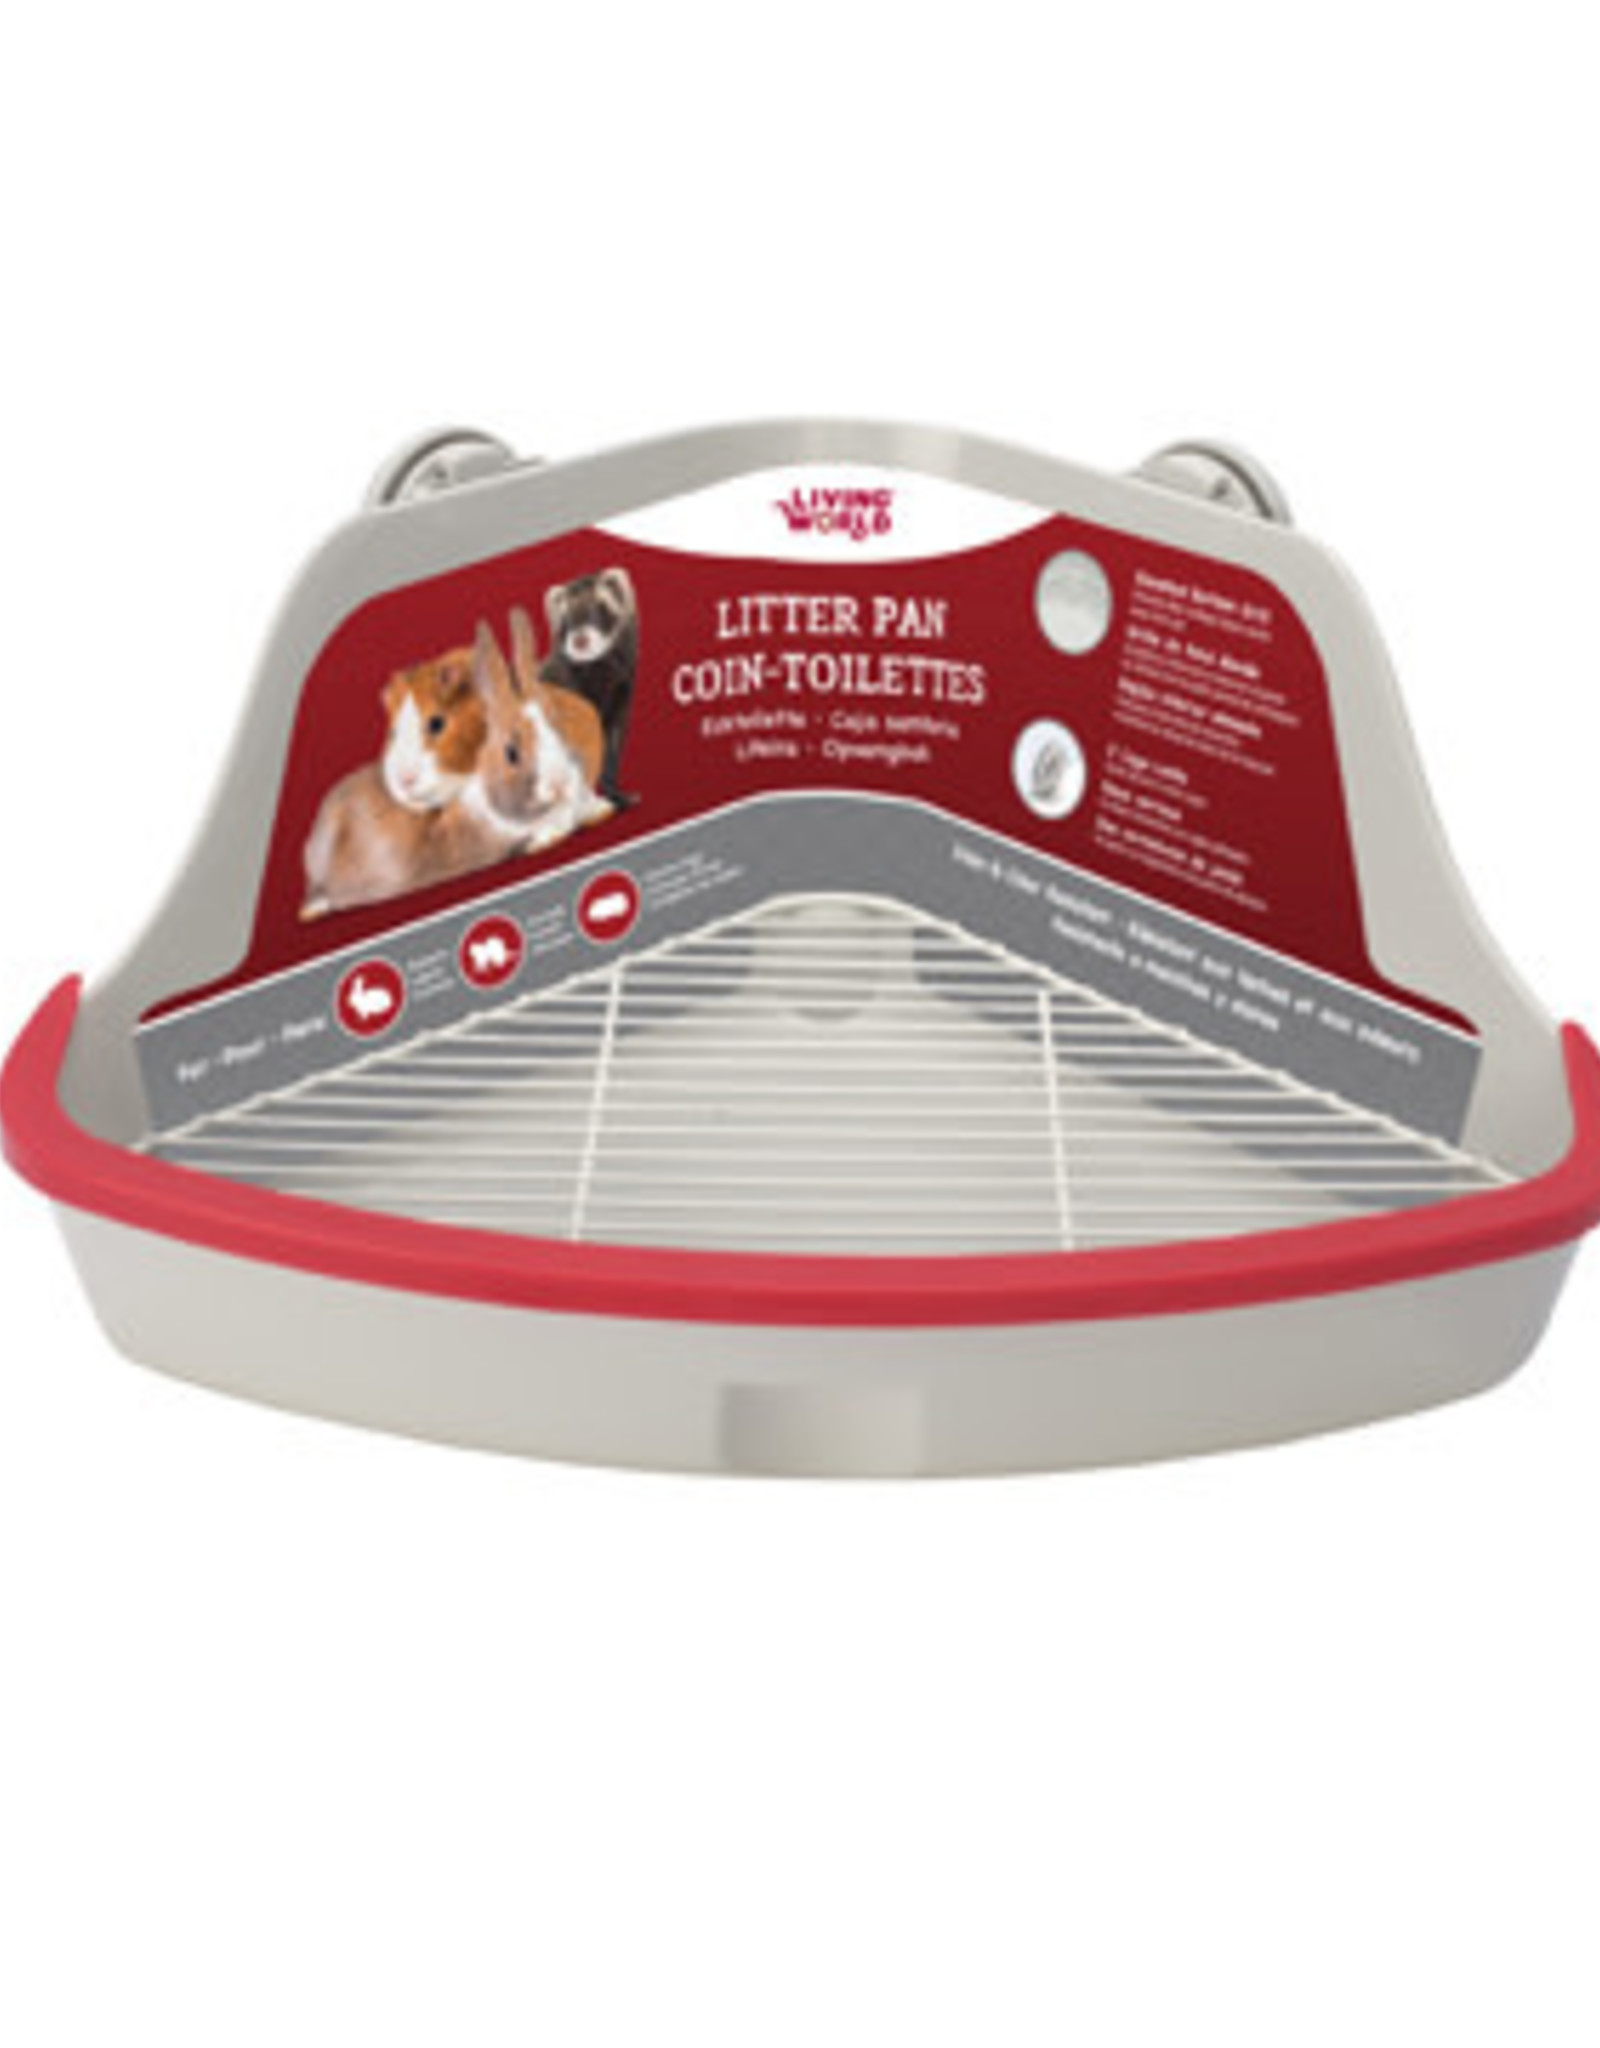 LIVING WORLD Living World Small Animal Corner Litter Pan - Gray - Large - 41.5 cm L x 29 cm W x 20 cm H (16.3 x 11.4 x 7.8 in)